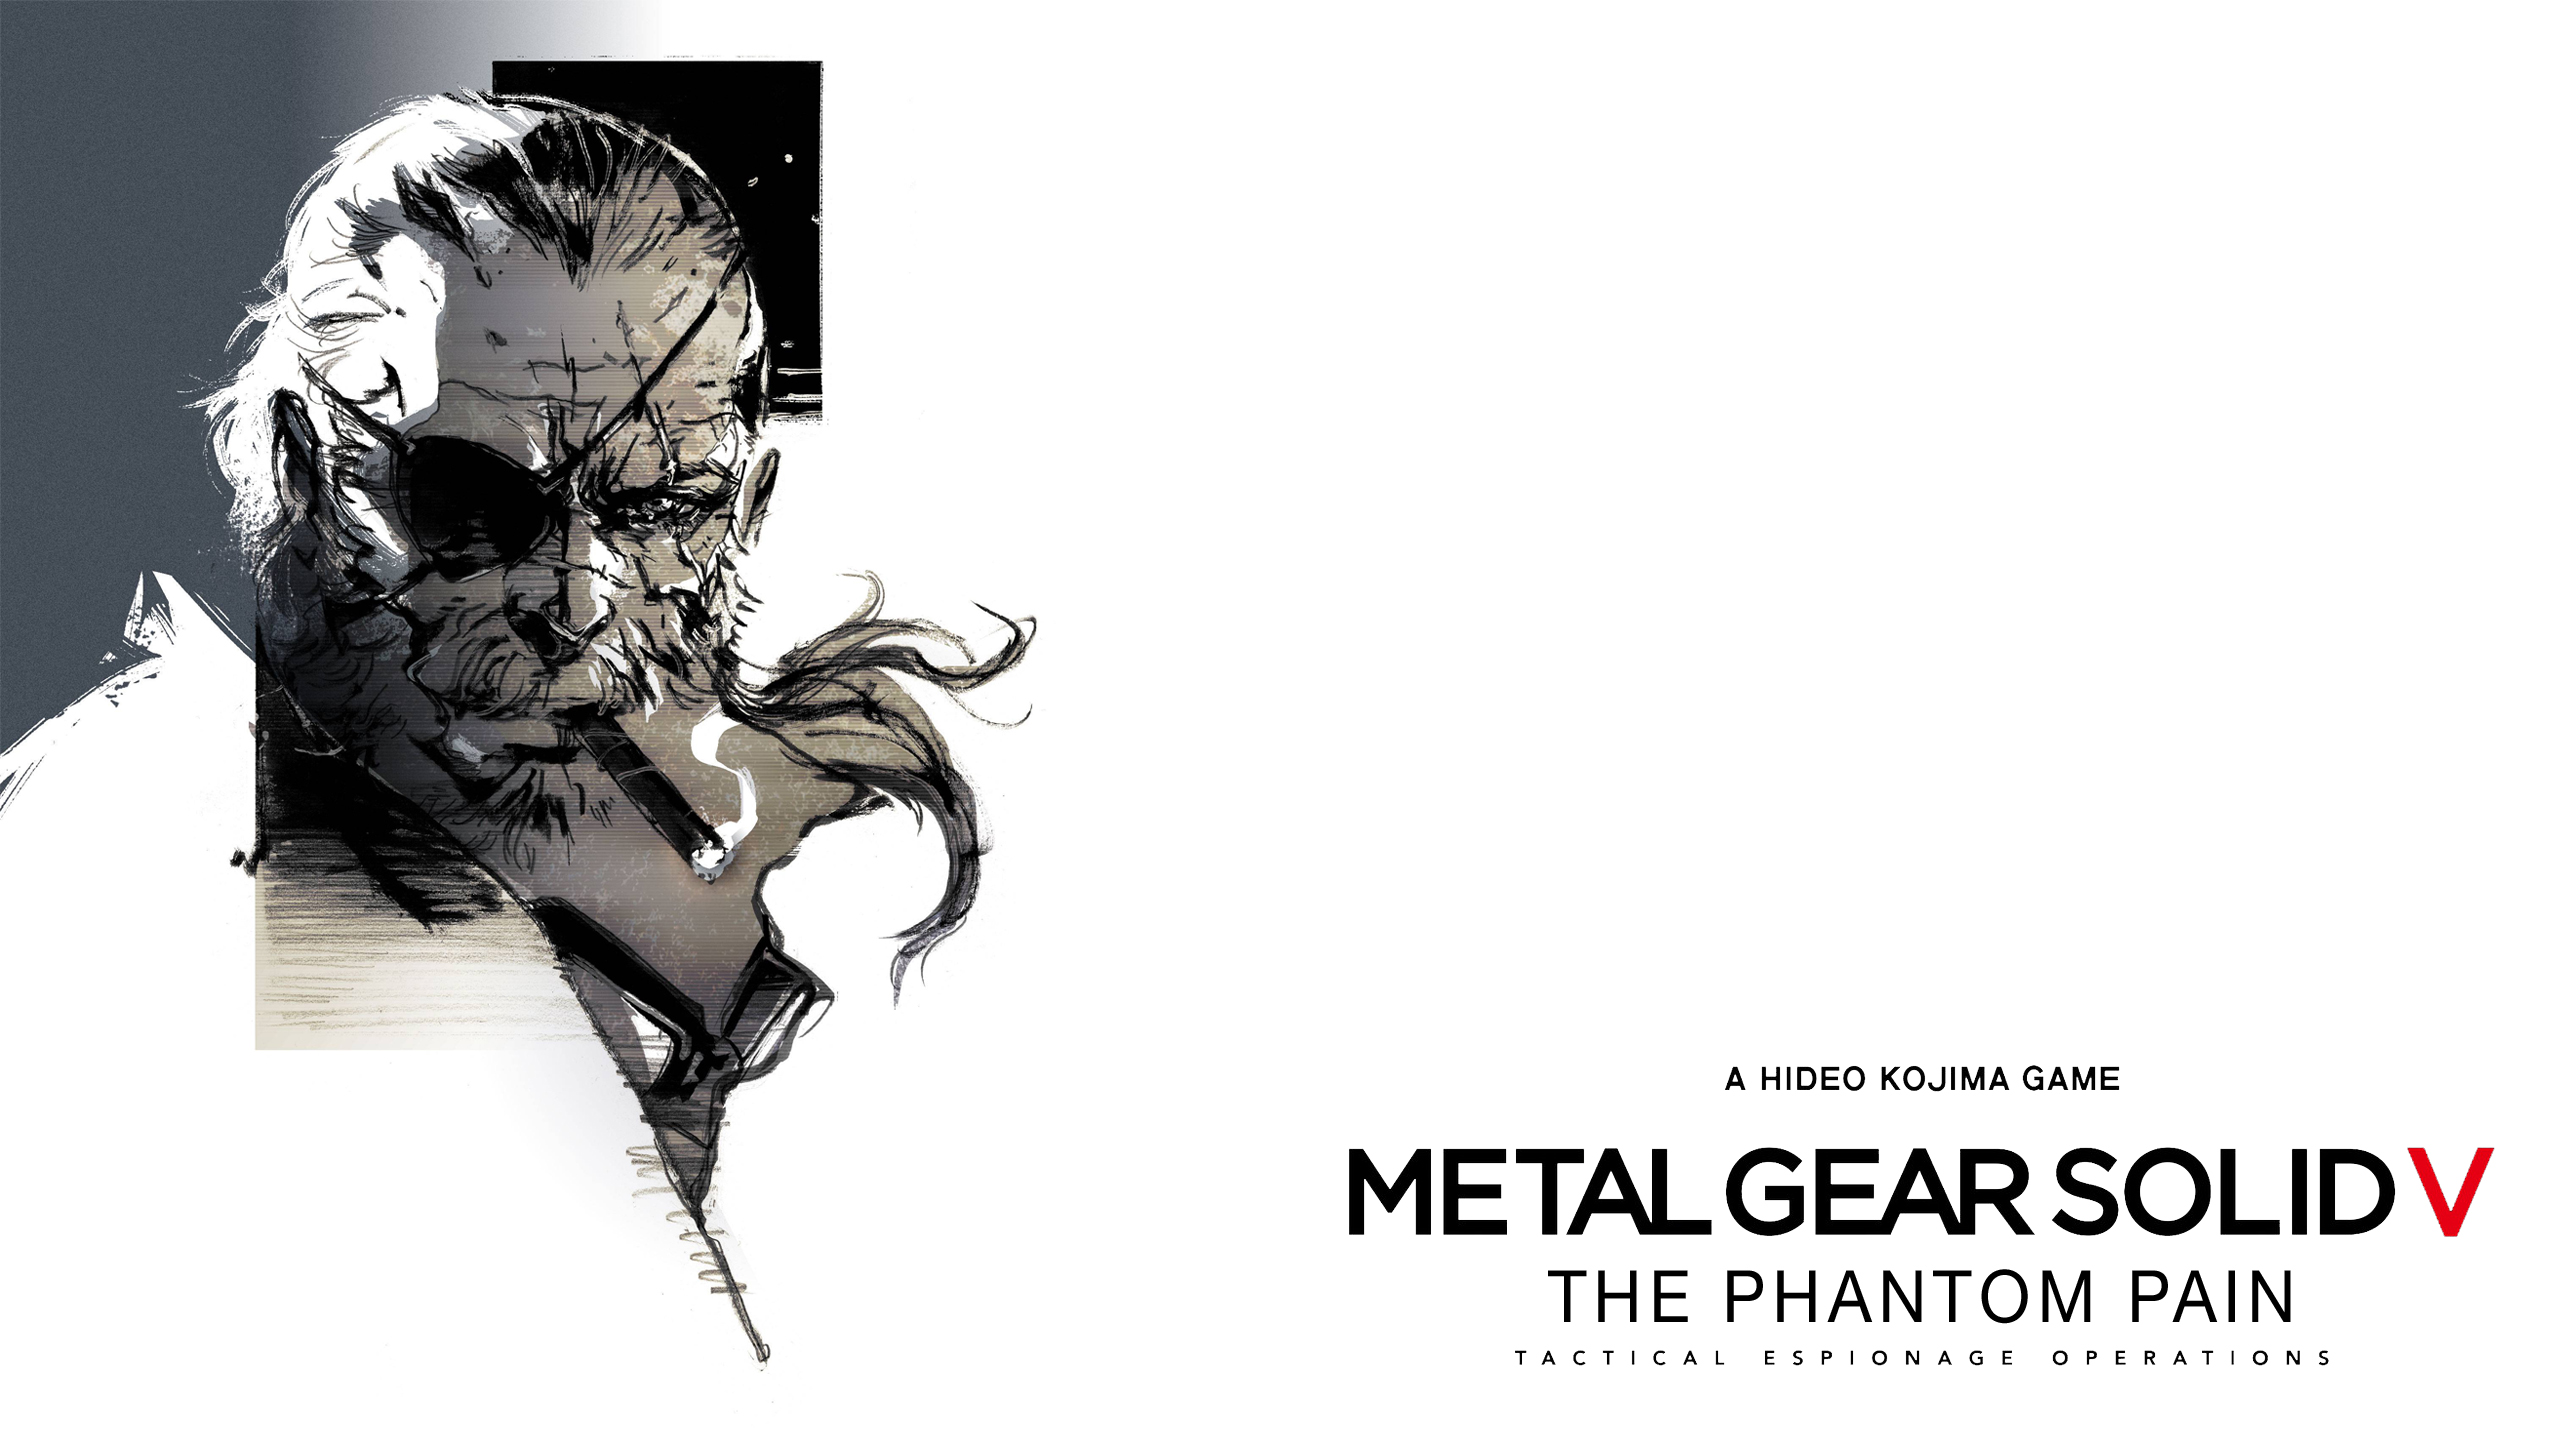 metal gear solid wallpaper iphone 6